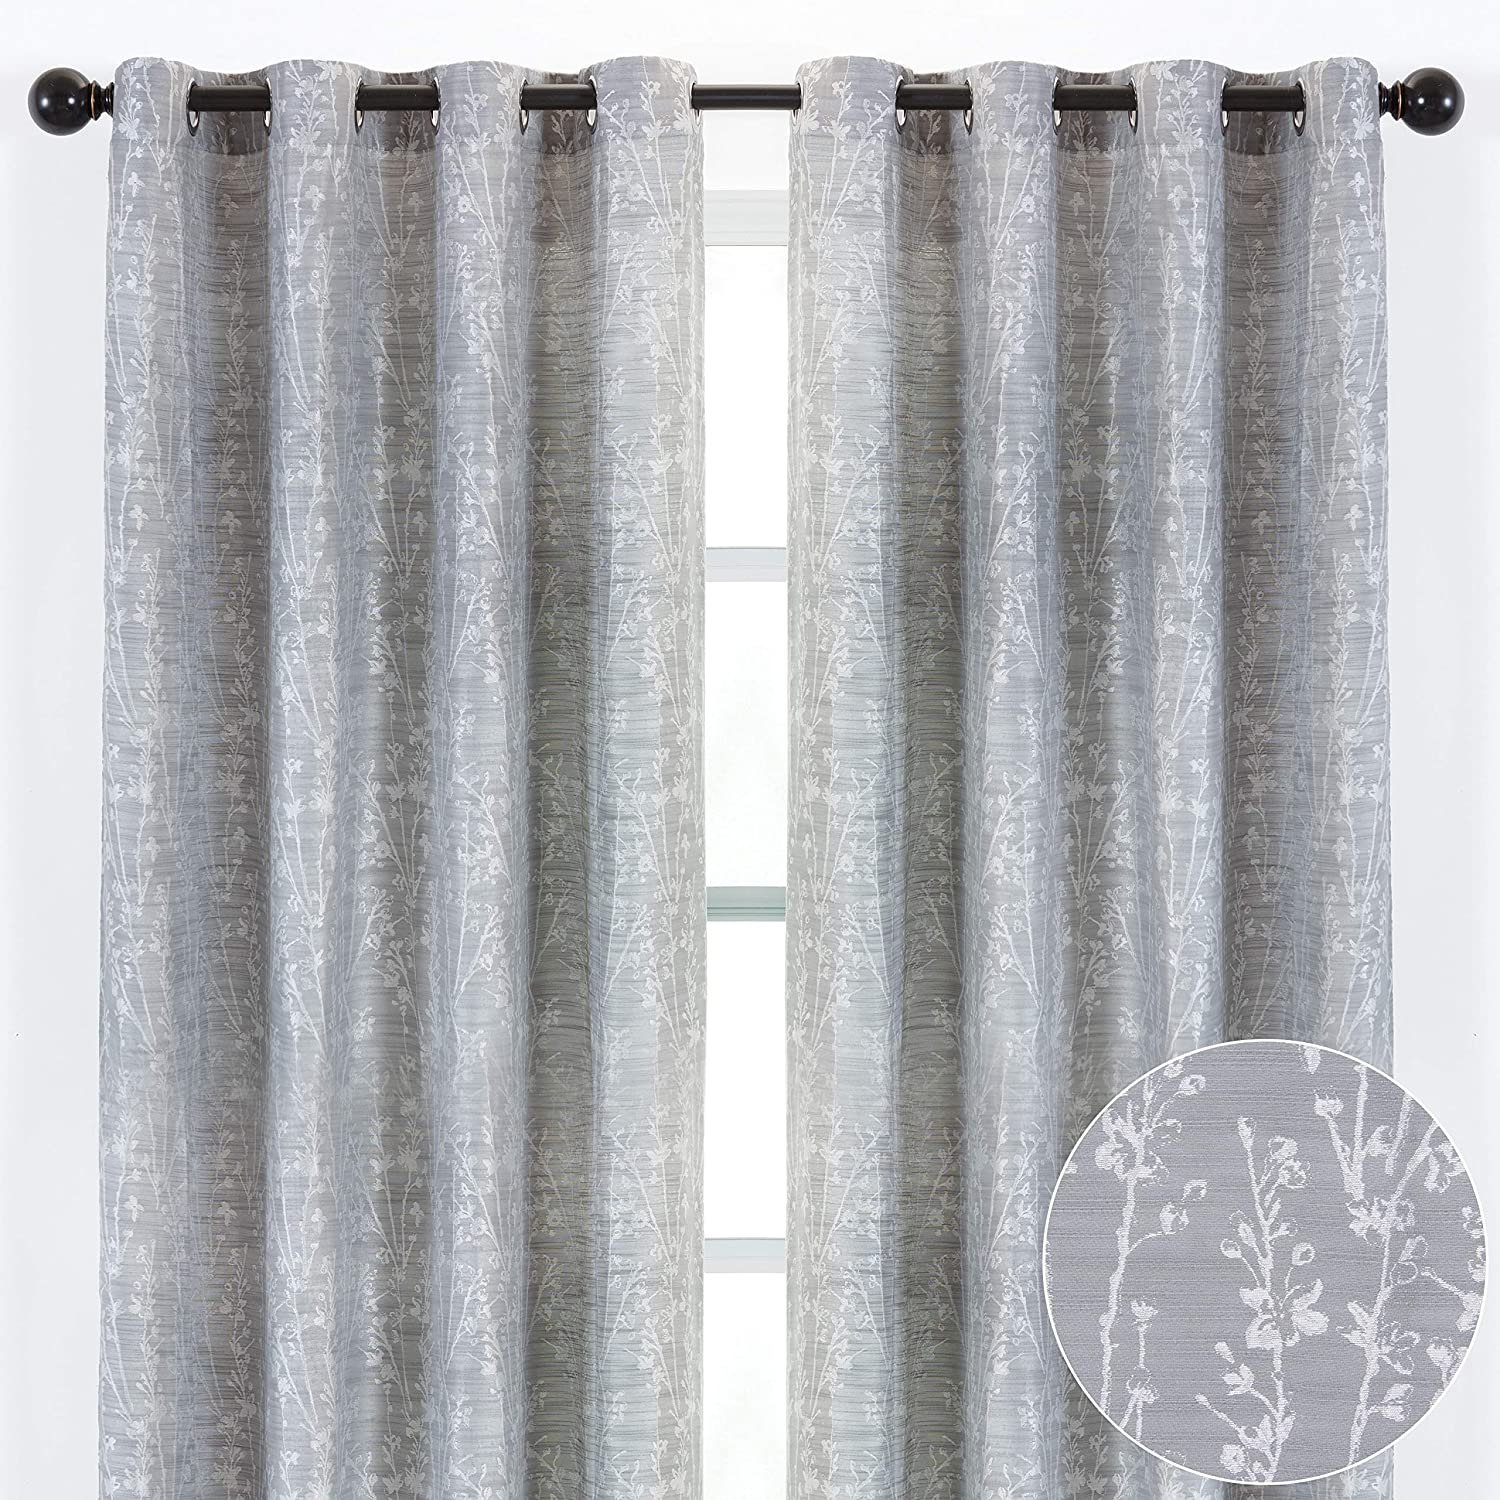 Chanasya 2-Panel Floral Jacquard Textured Silver Curtains with Grommets for Windows Living Room Bedroom Office - Partial Room Darkening Drapes for Privacy and Decor - 52 x 84 Inch Long - Silver